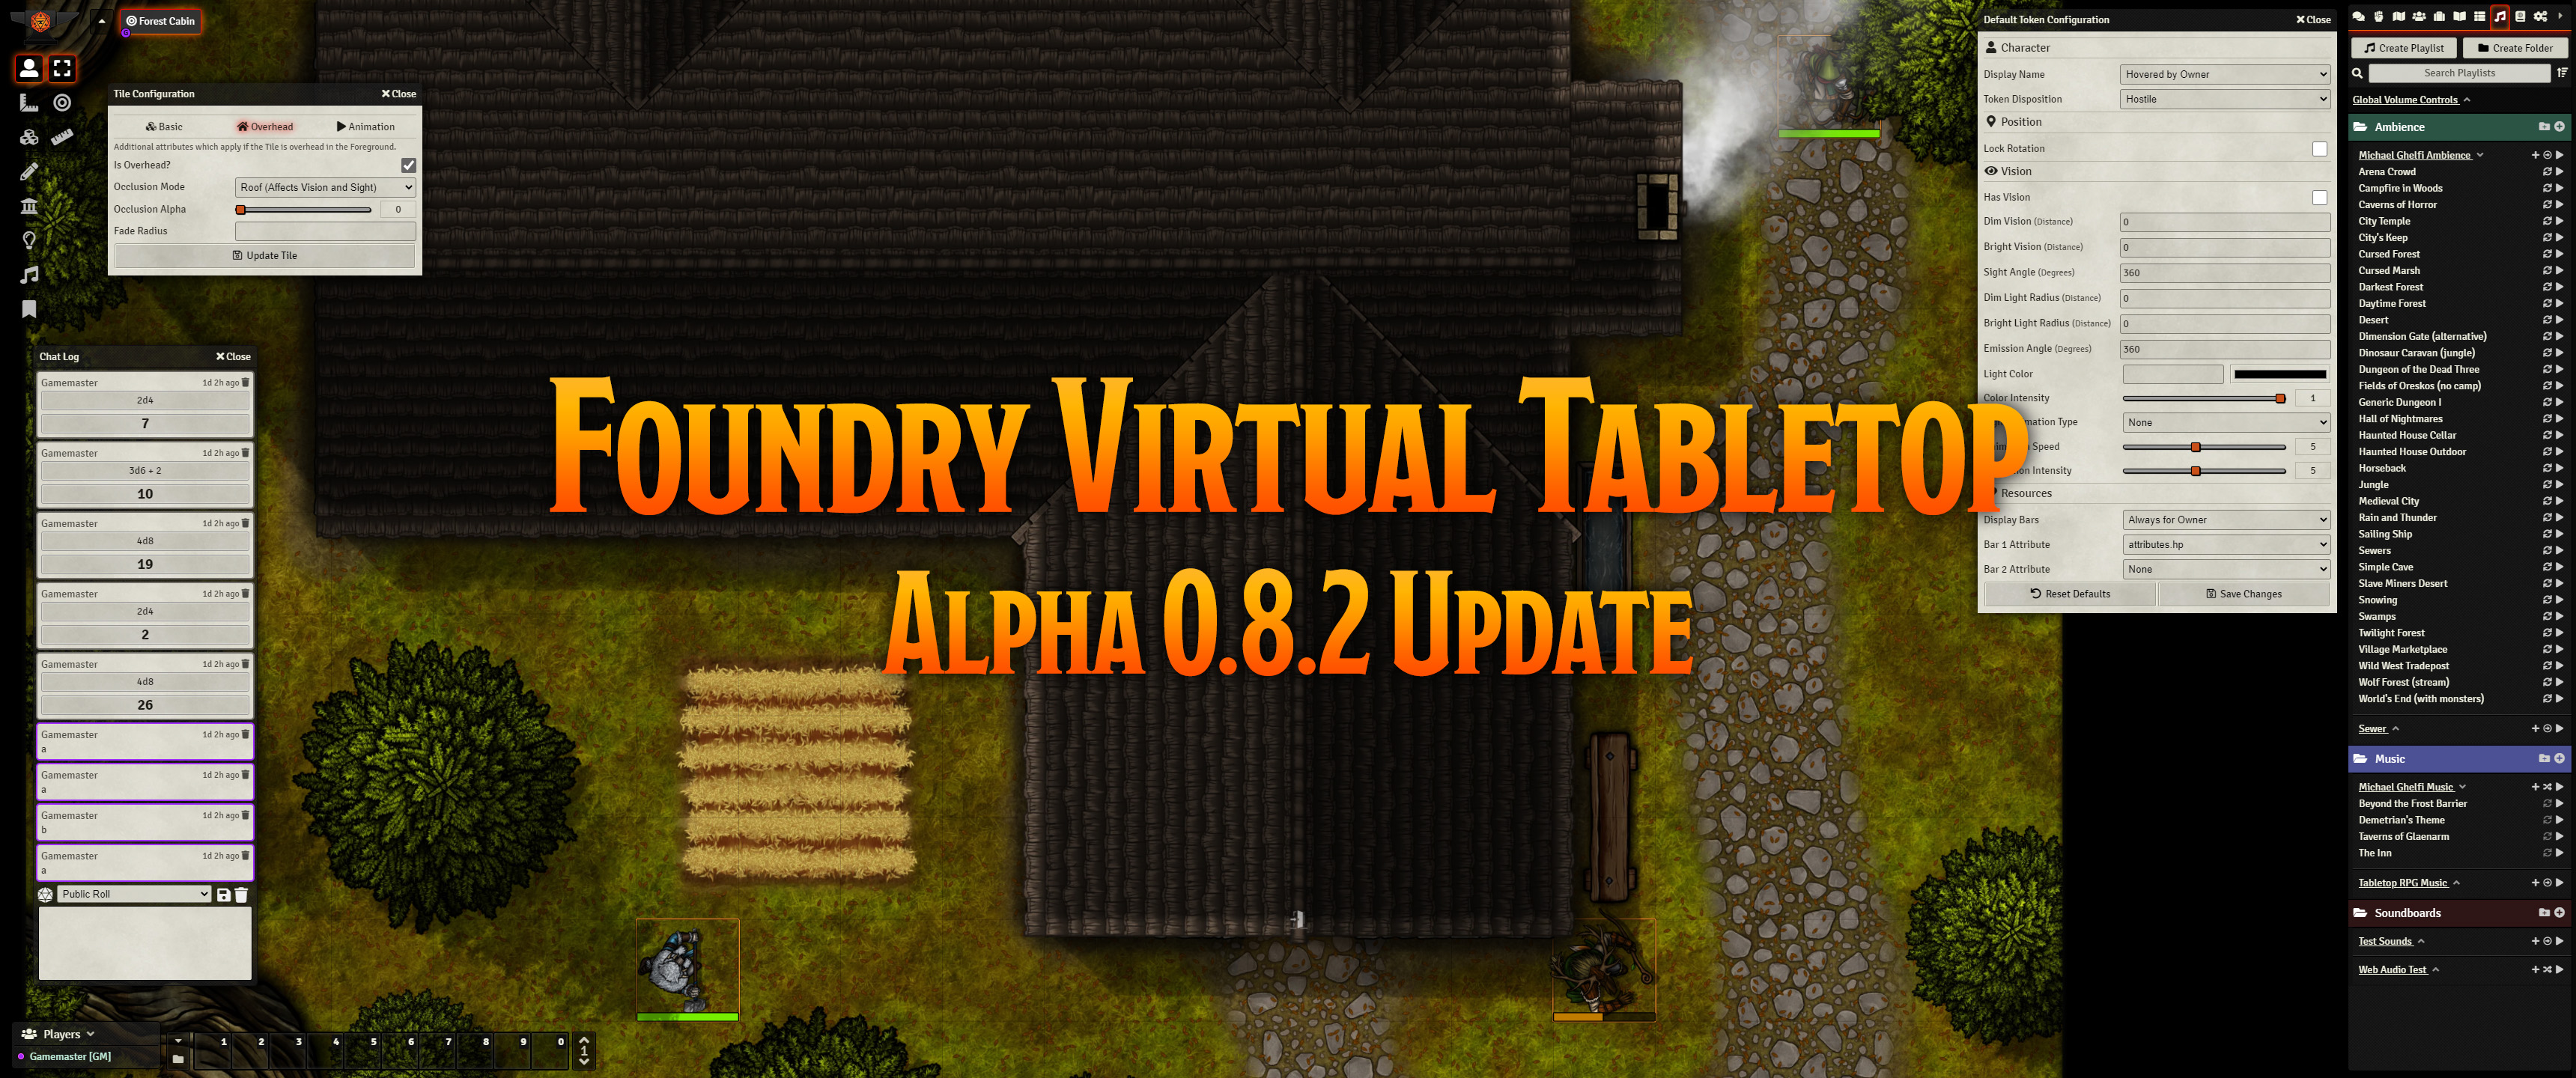 Release Notes for the Foundry Virtual Tabletop 0.8.2 version